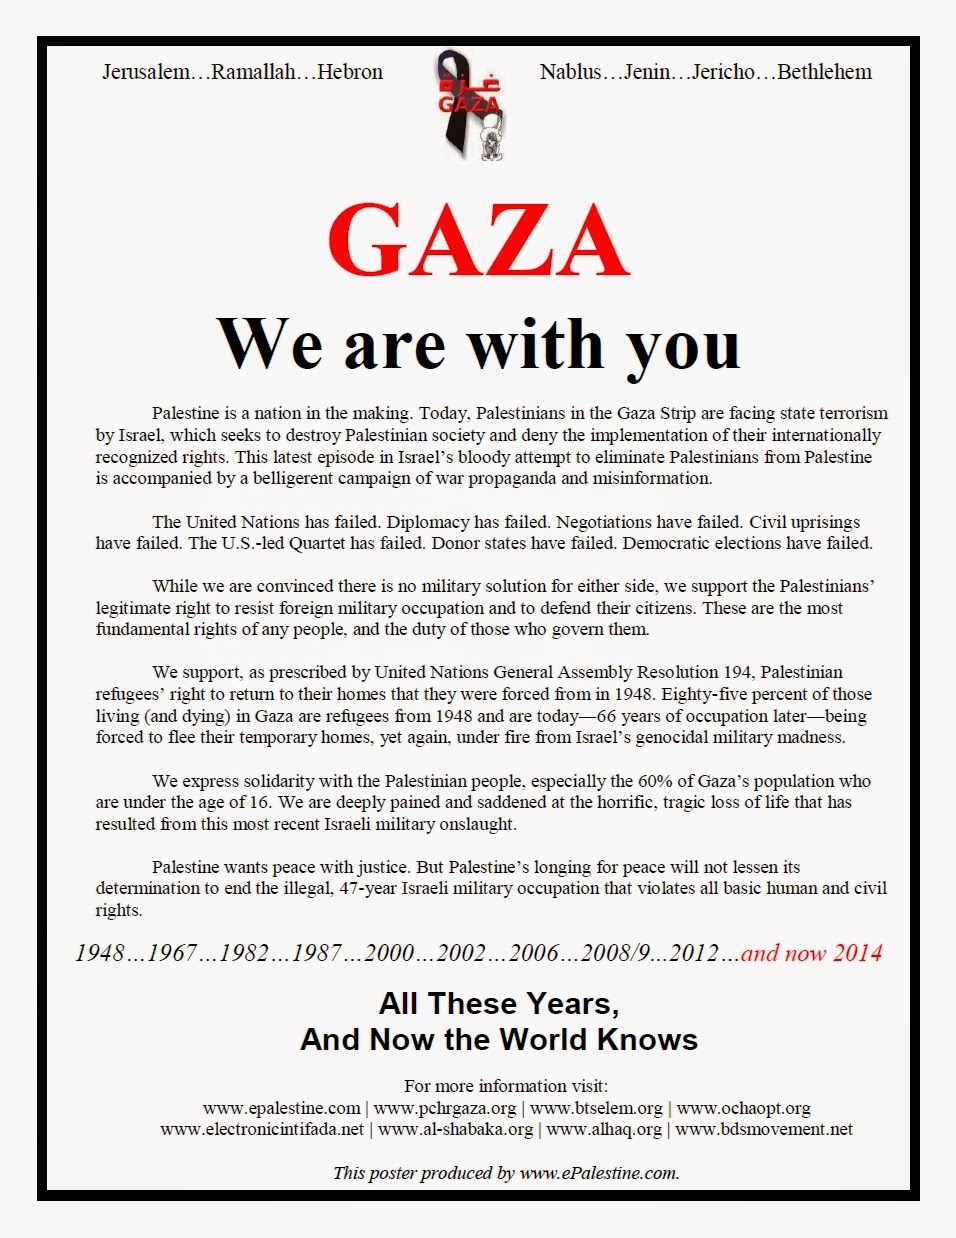 http://www.epalestine.com/GAZA_We_Are_With_You.jpg